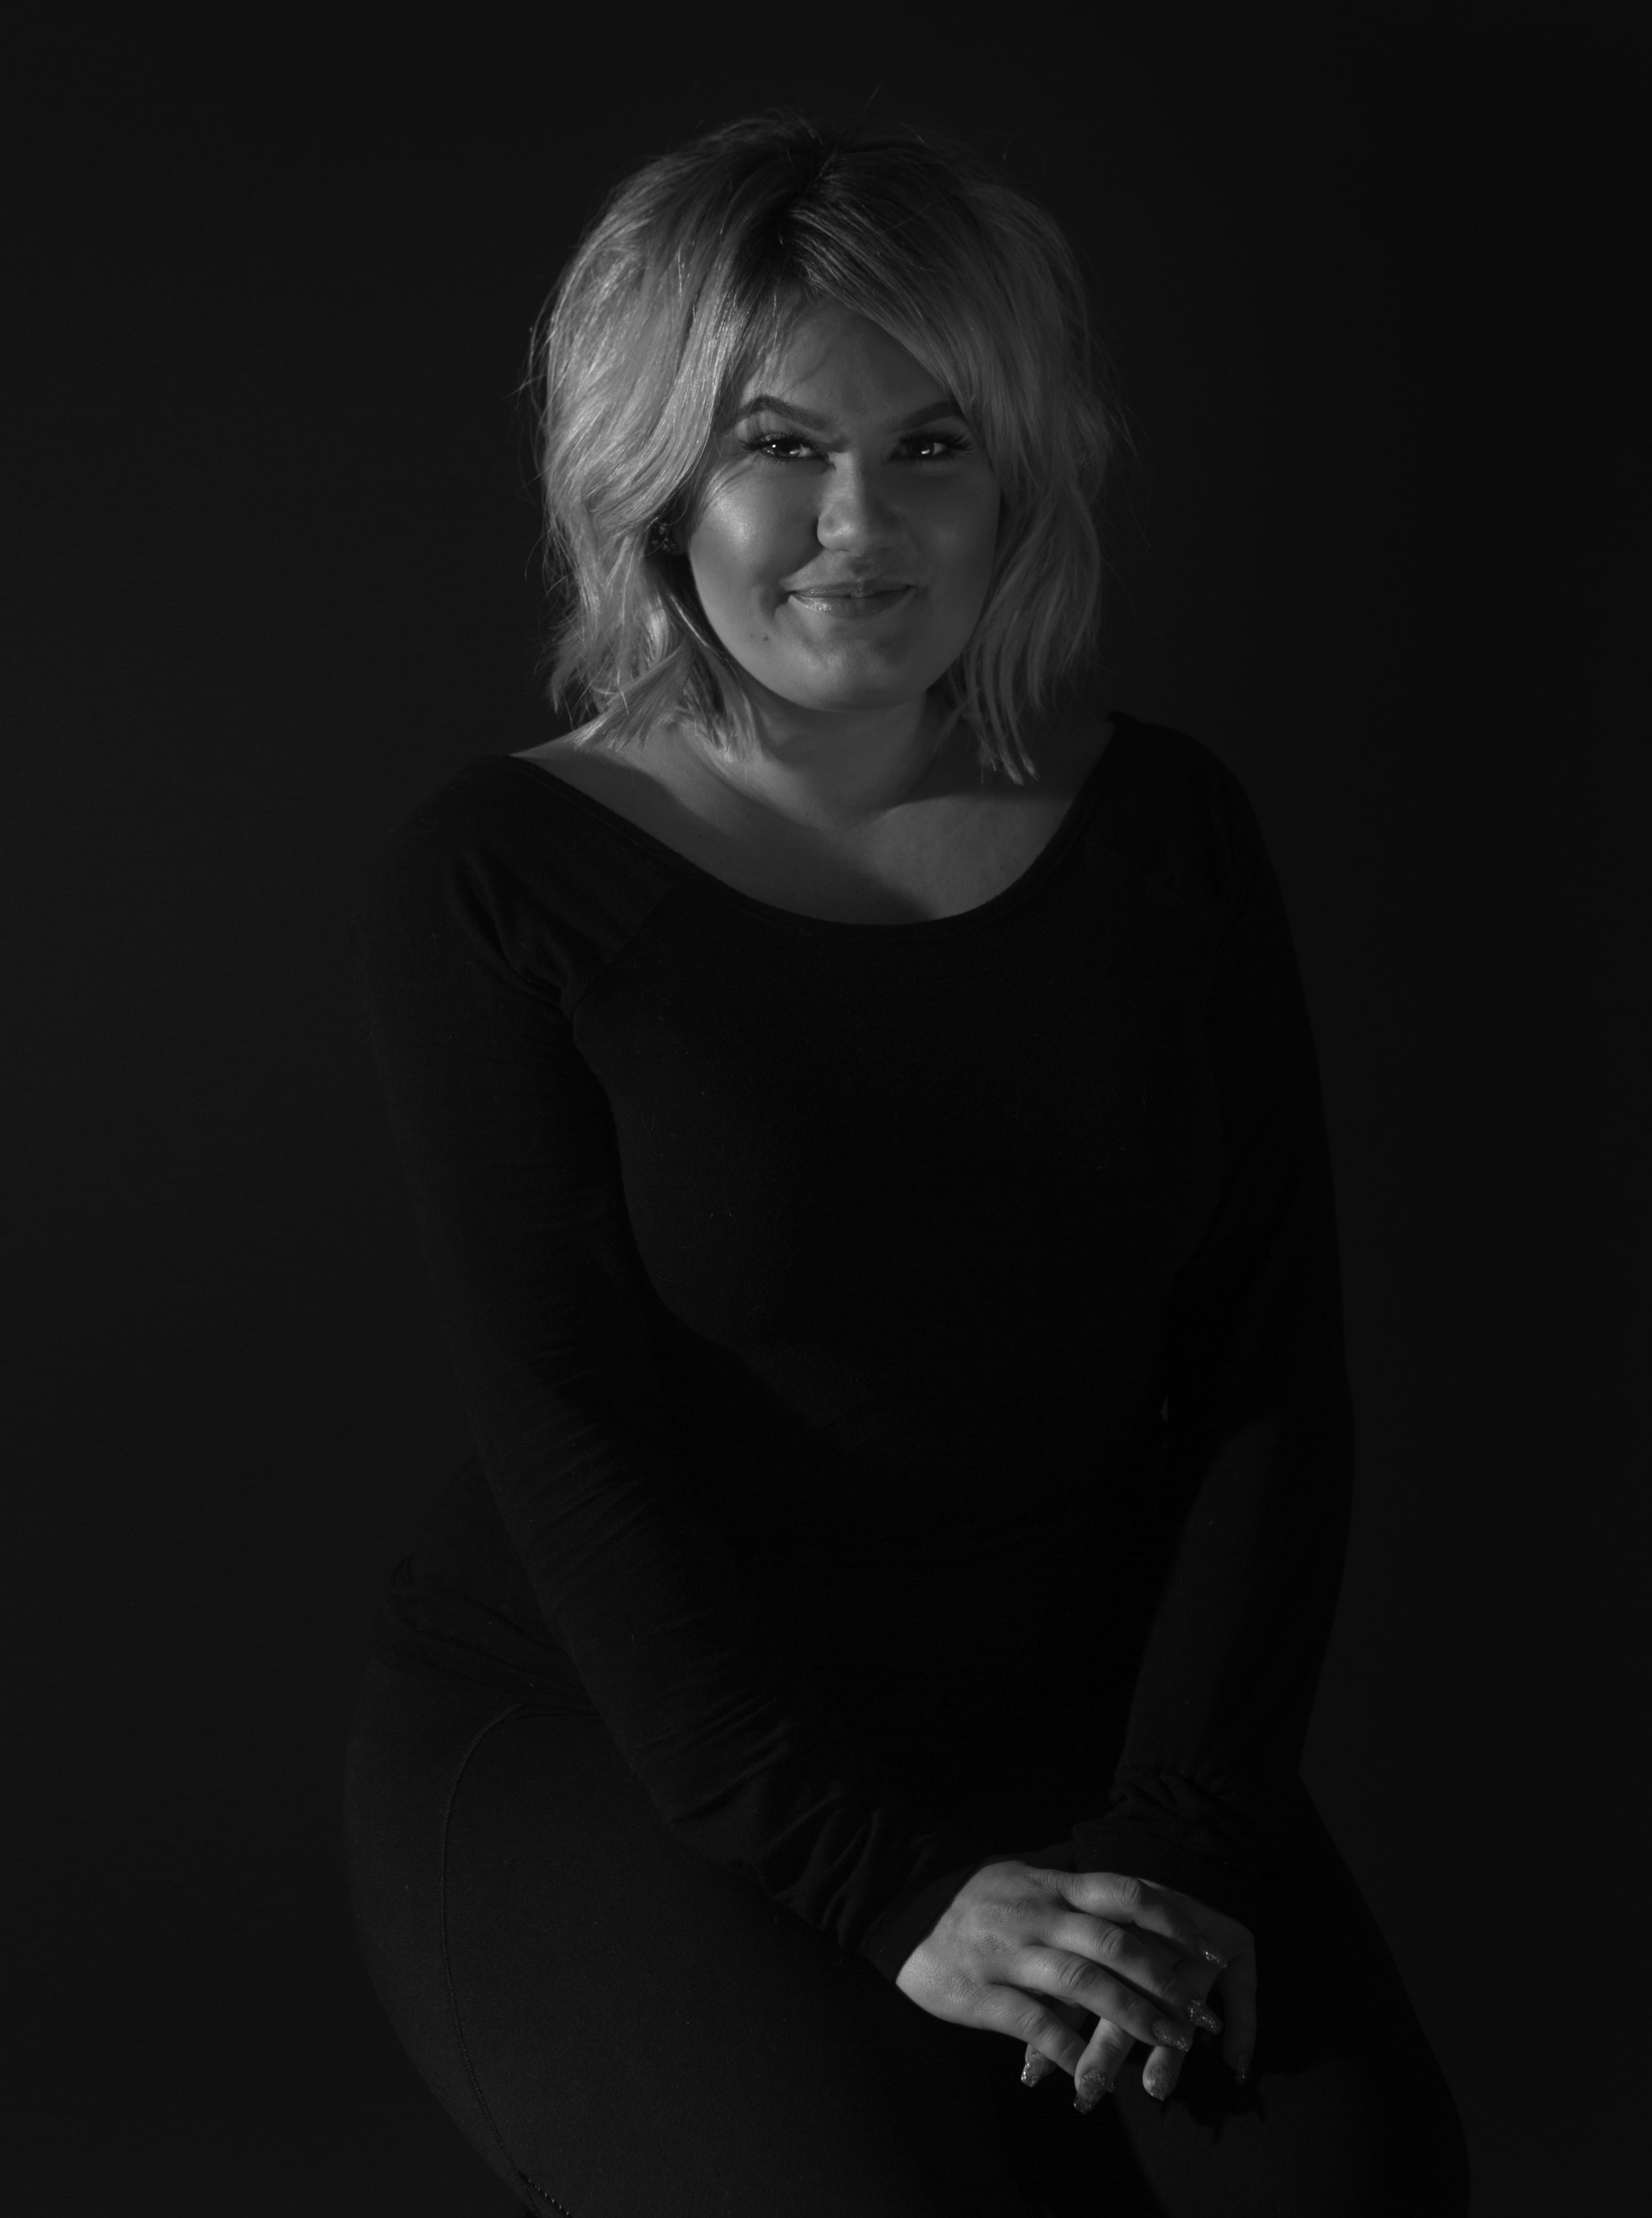 Carolyn - SENIOR STYLIST and MAKEUP ARTISTCarolyn is a high-spirited and devoted senior stylist with 2 years experience trained by Zazú's top educators. Her passion is to make people feel beautiful in her chair. Carolyn specializes in hair coloring, women's and men's hair cutting, makeup and bridal.Woman's Haircut $65 Men's Cut $45INSTAGRAM @CAROLYNGASLAWSKA